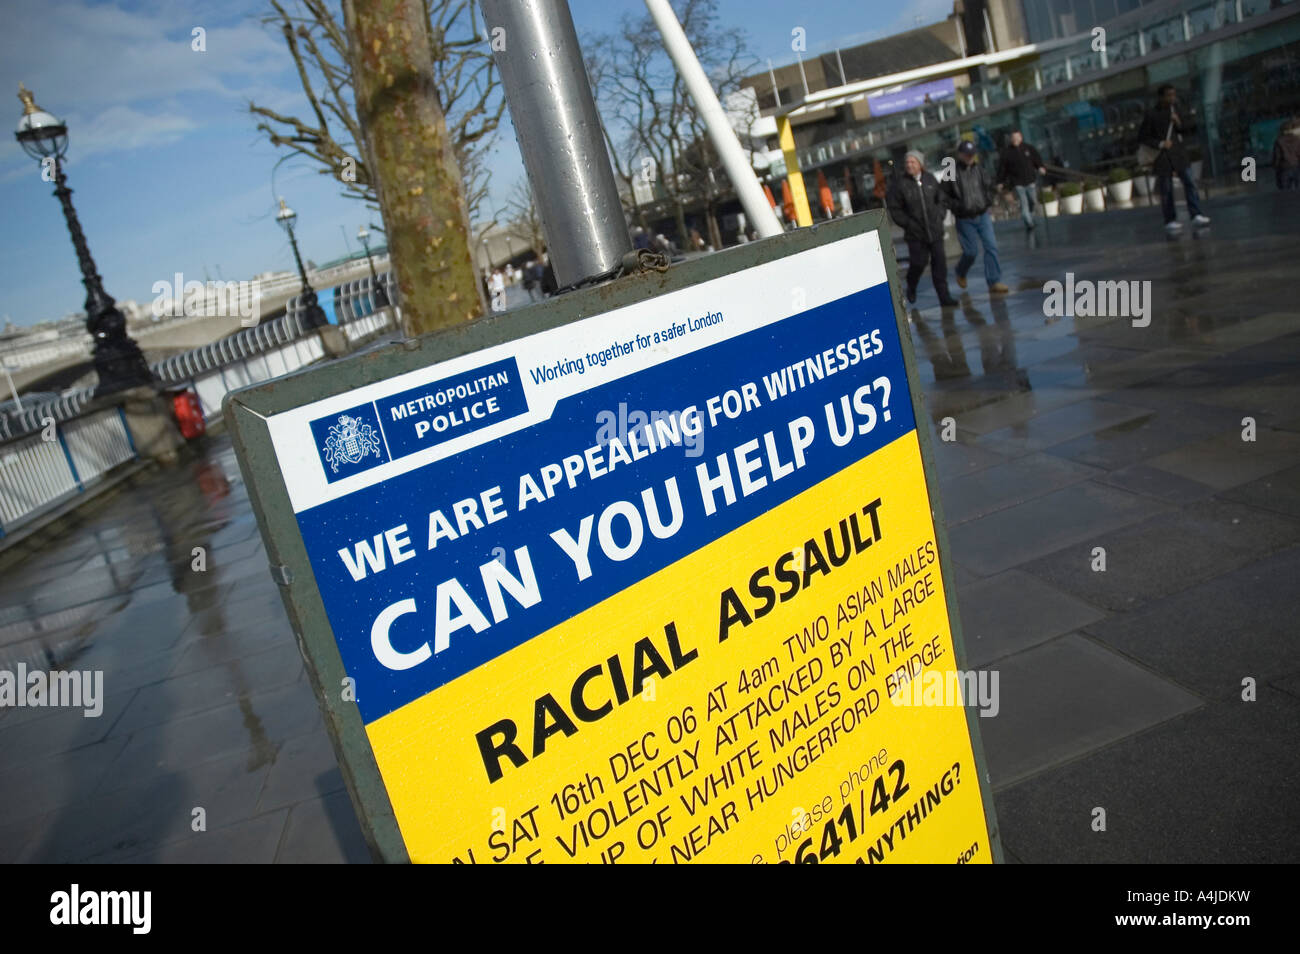 Sign for a racial assault on the South Bank, London, UK - Stock Image